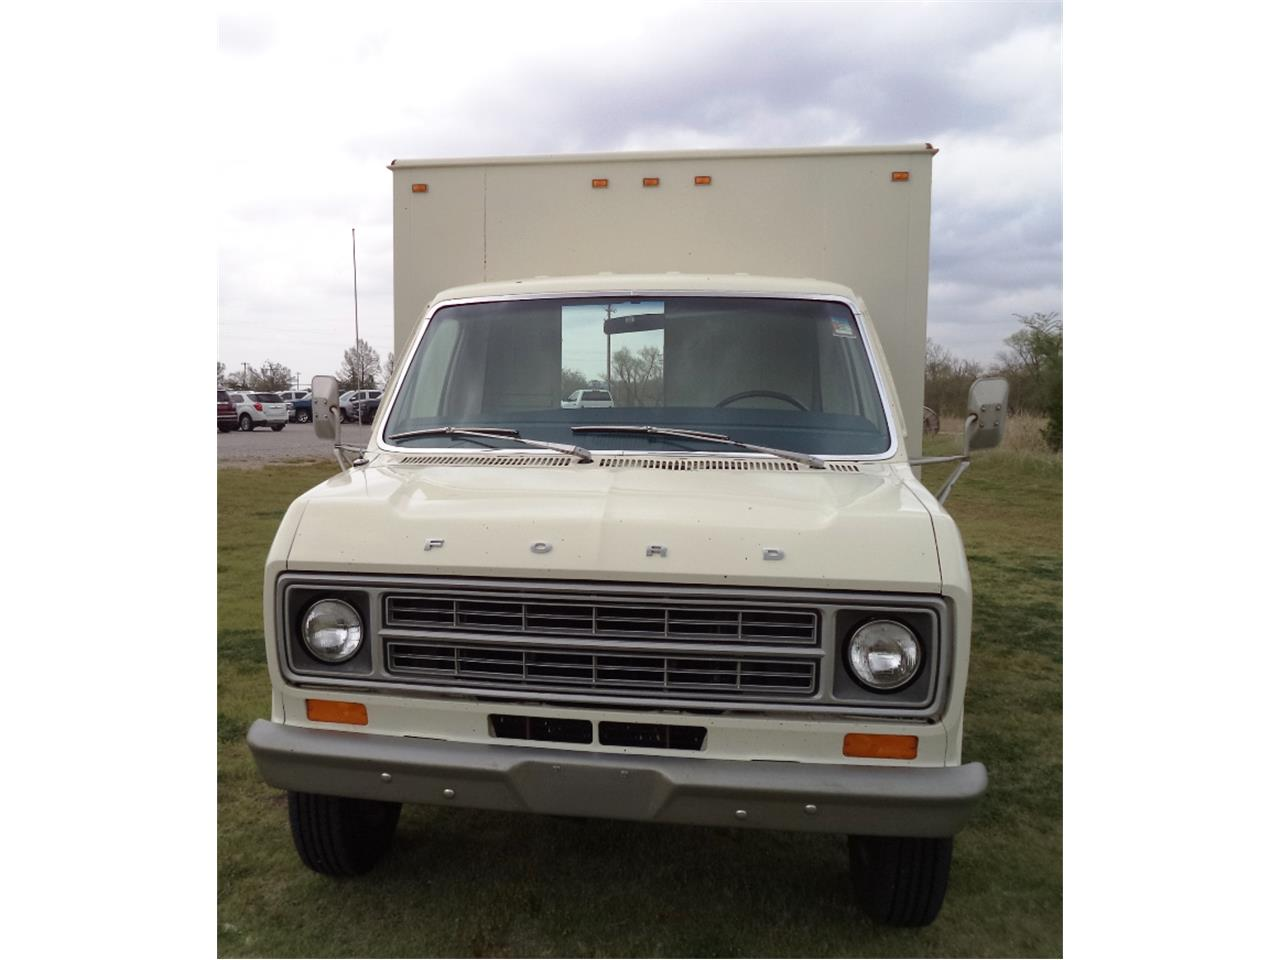 Large Picture of '76 Ford E350 located in Great Bend Kansas Auction Vehicle Offered by F & E Collector Auto Auctions - OGM0